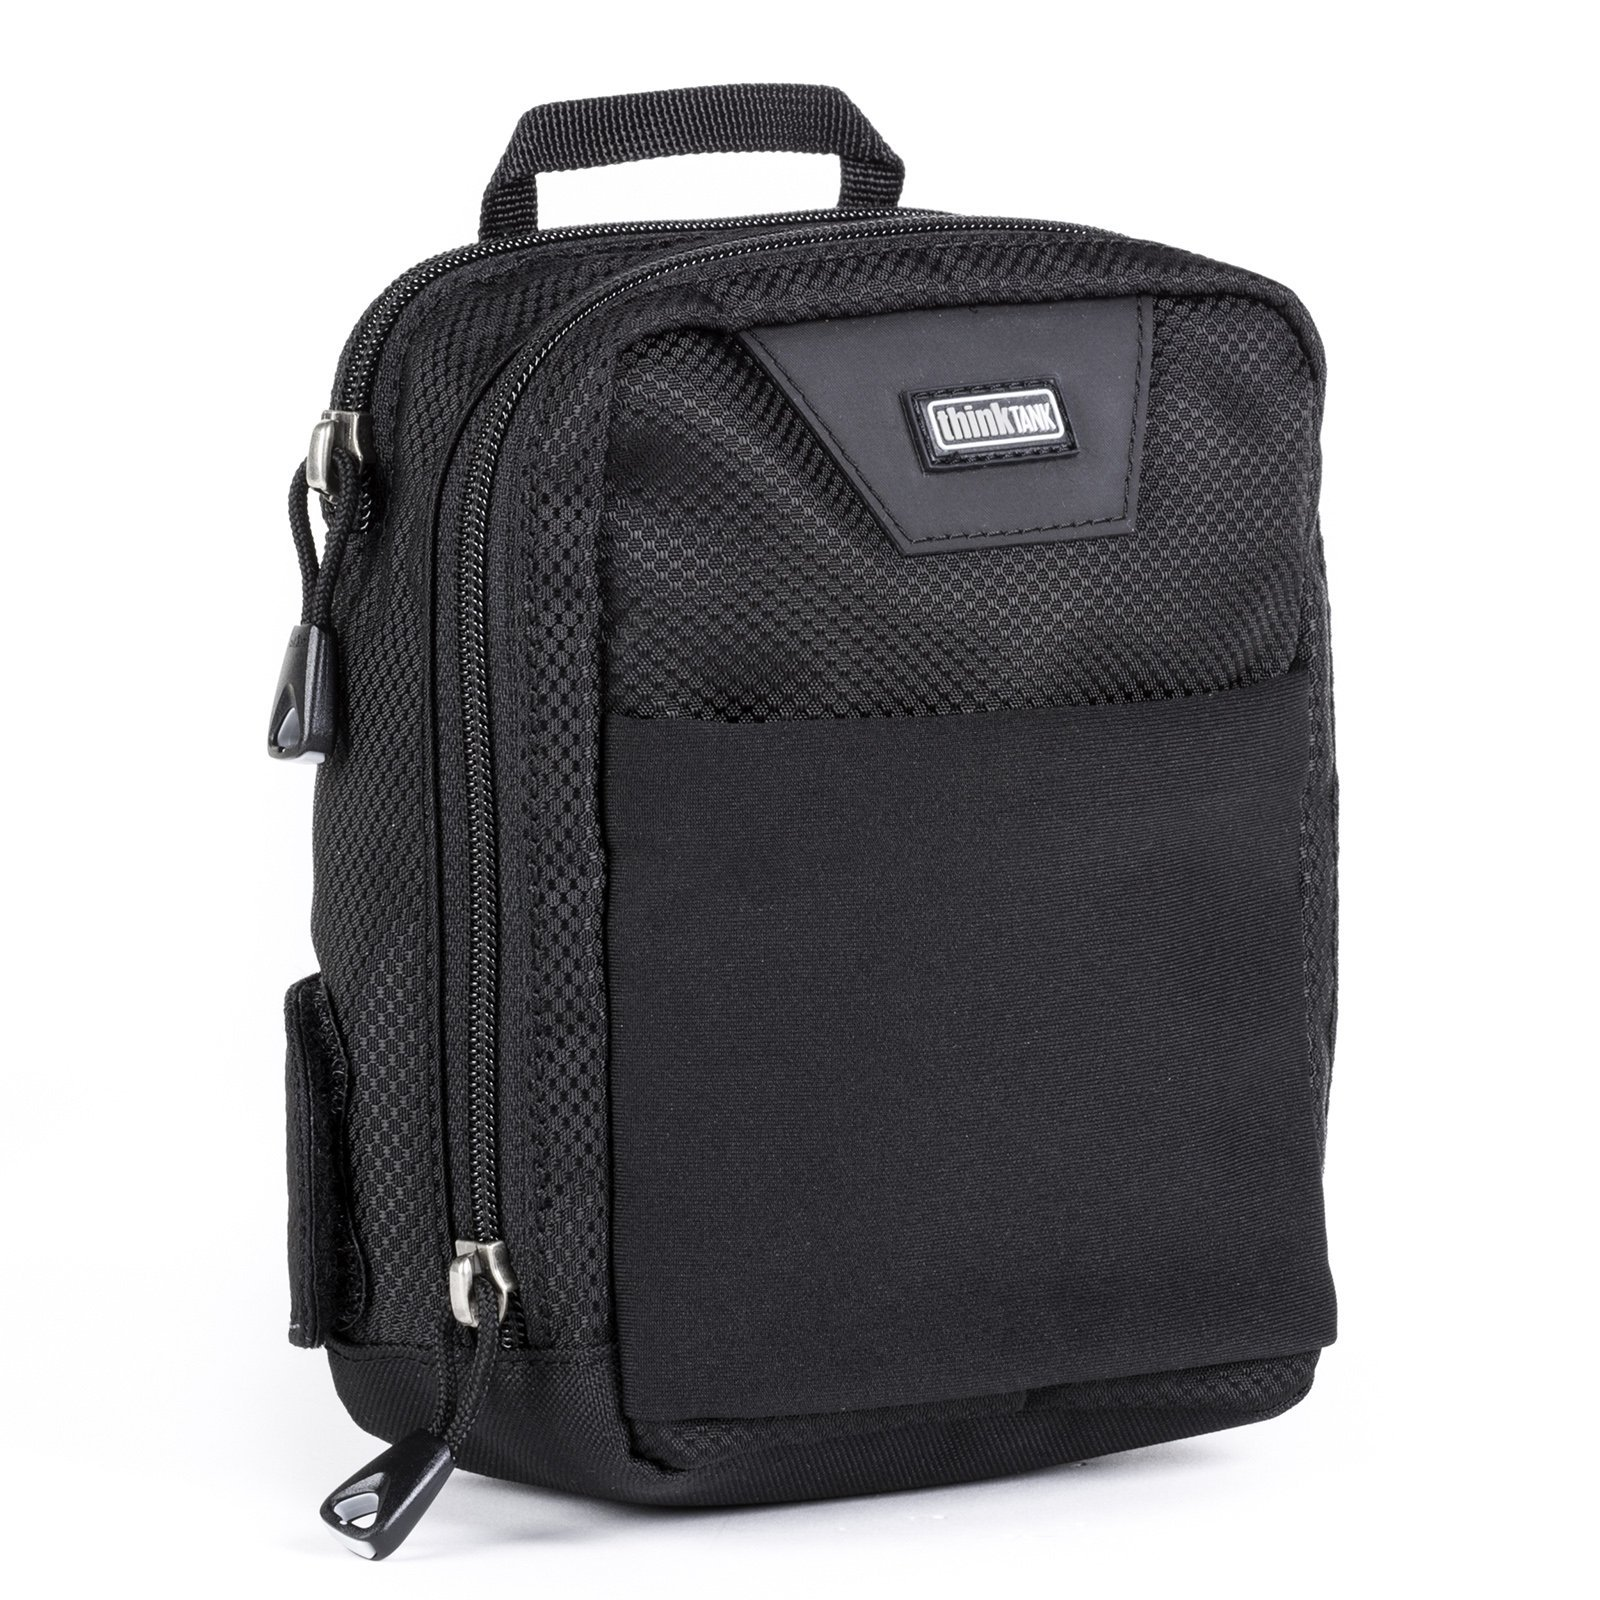 Think Tank Photo Stuff It! V3.0 Compact Camera and Accessories Belt Pouch (Black) by Think Tank